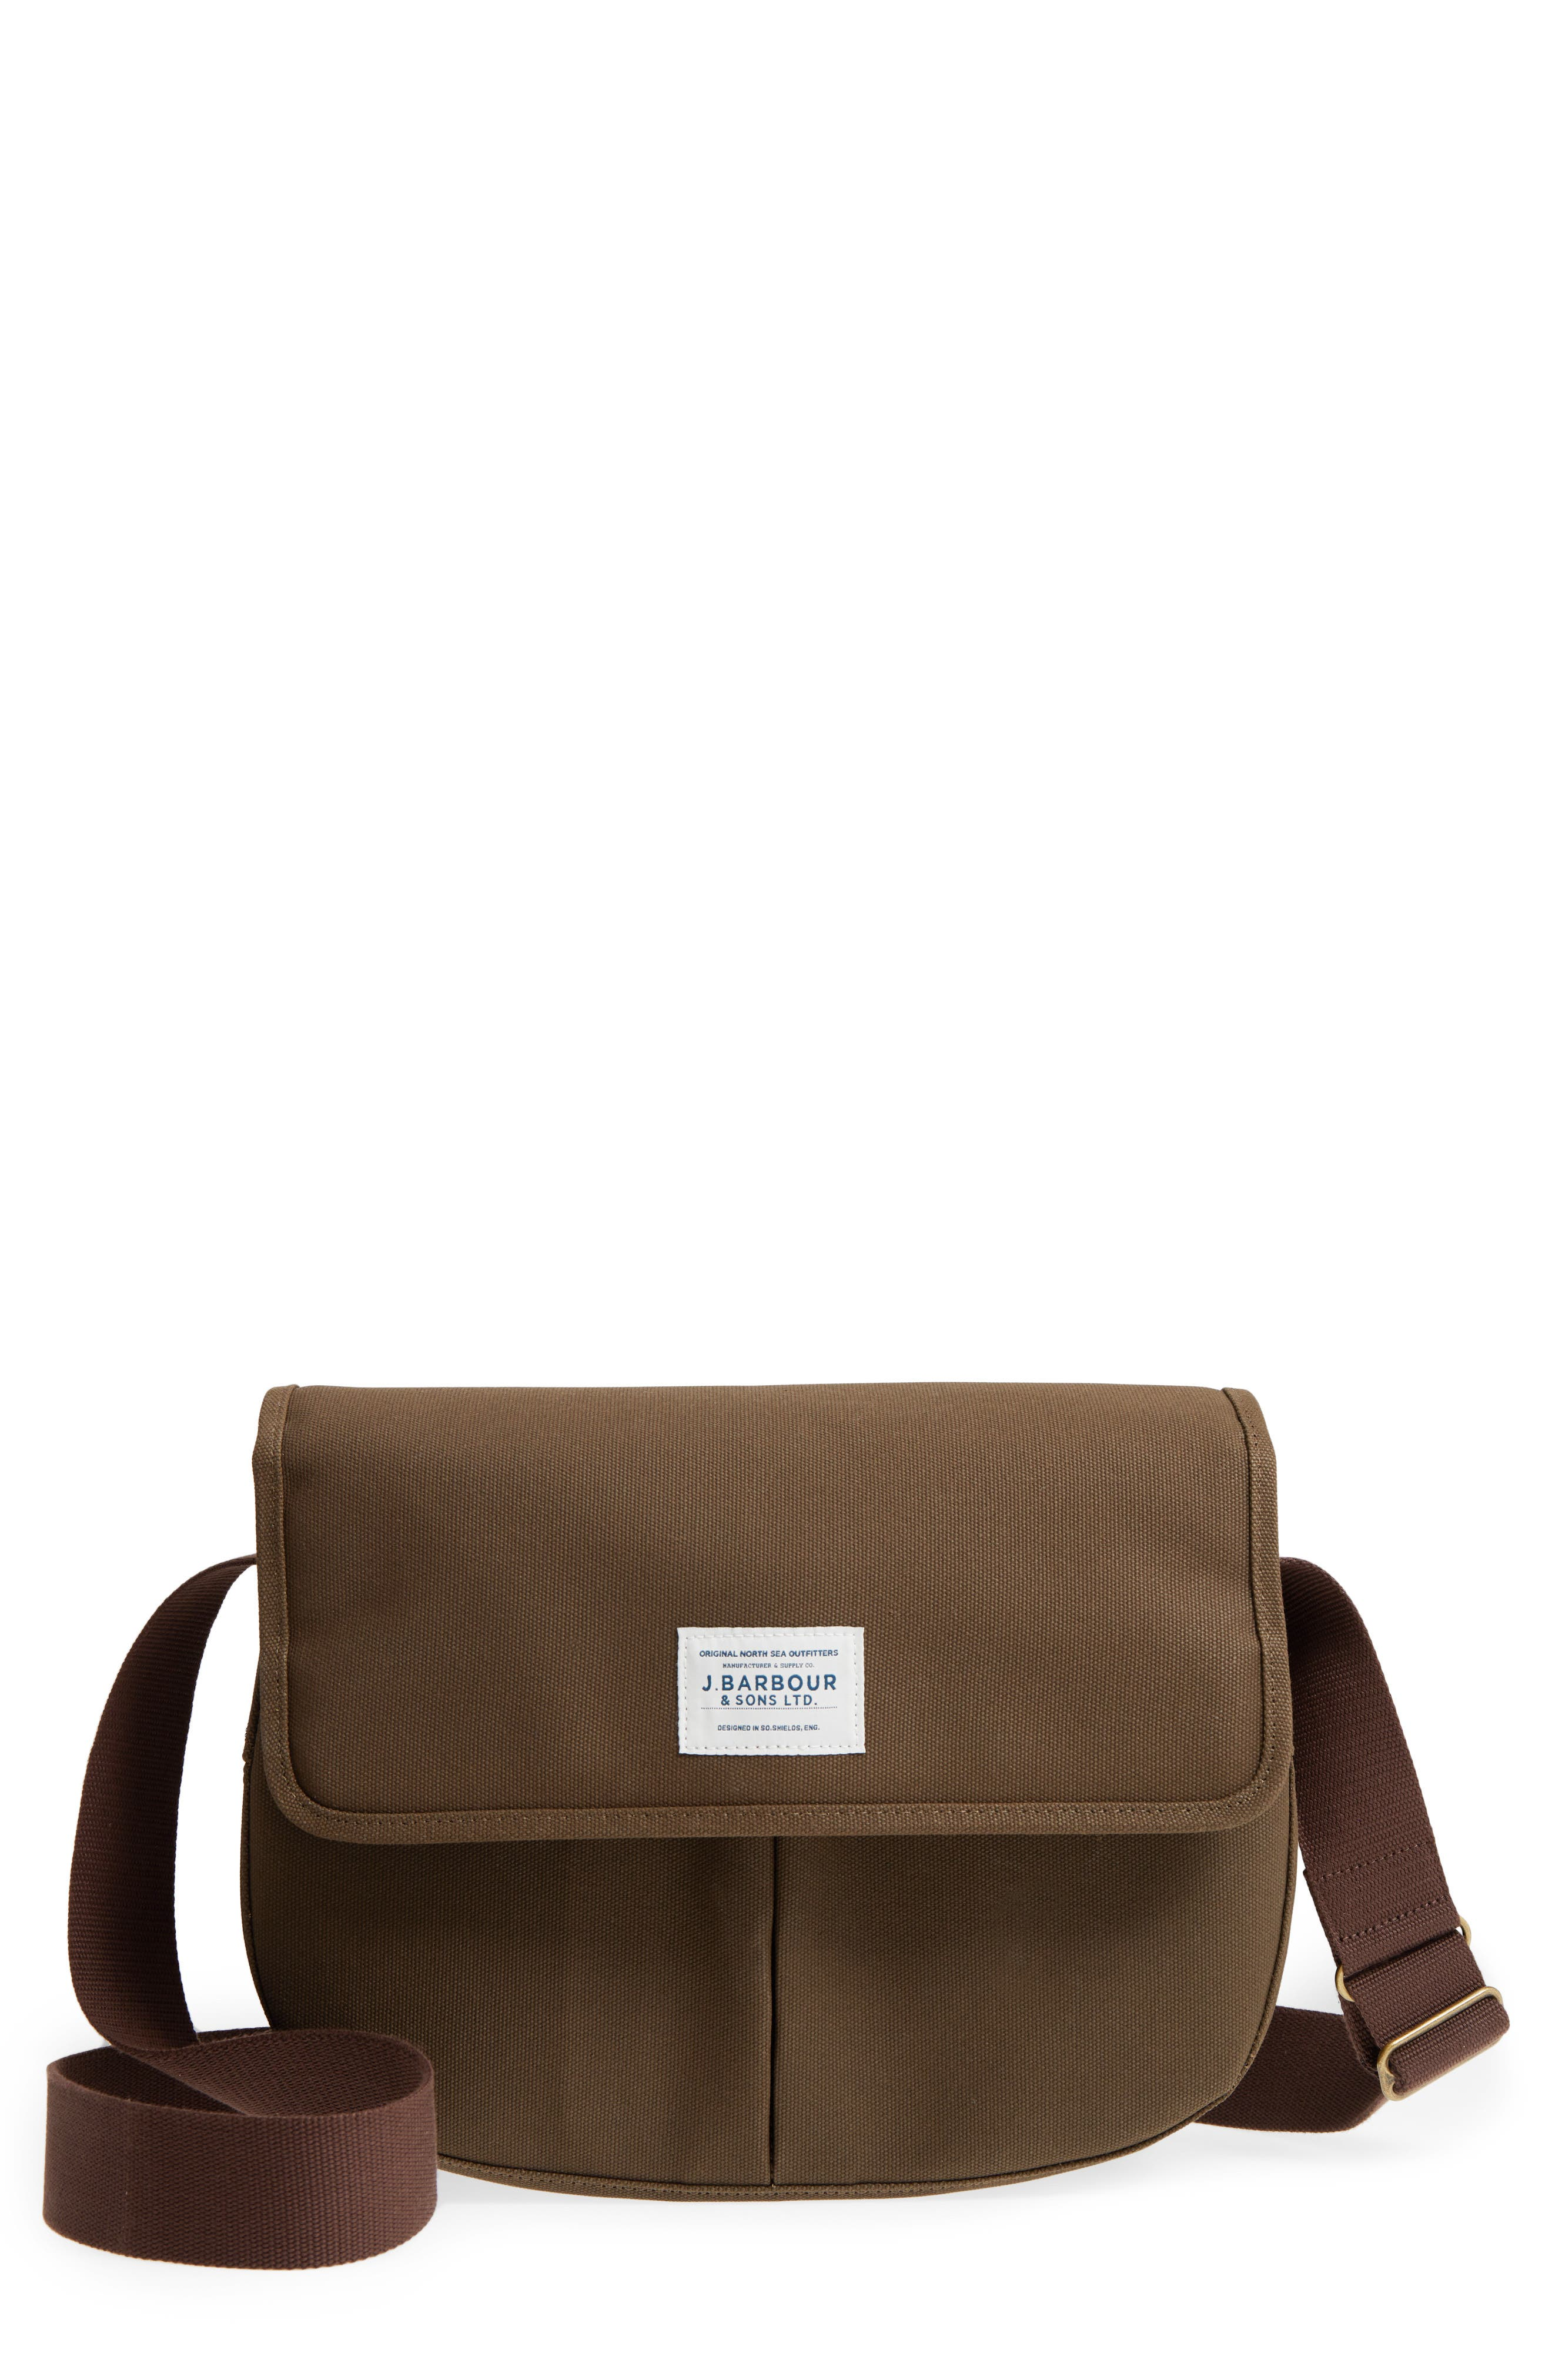 Tarras Canvas Messenger Bag,                         Main,                         color, OLIVE